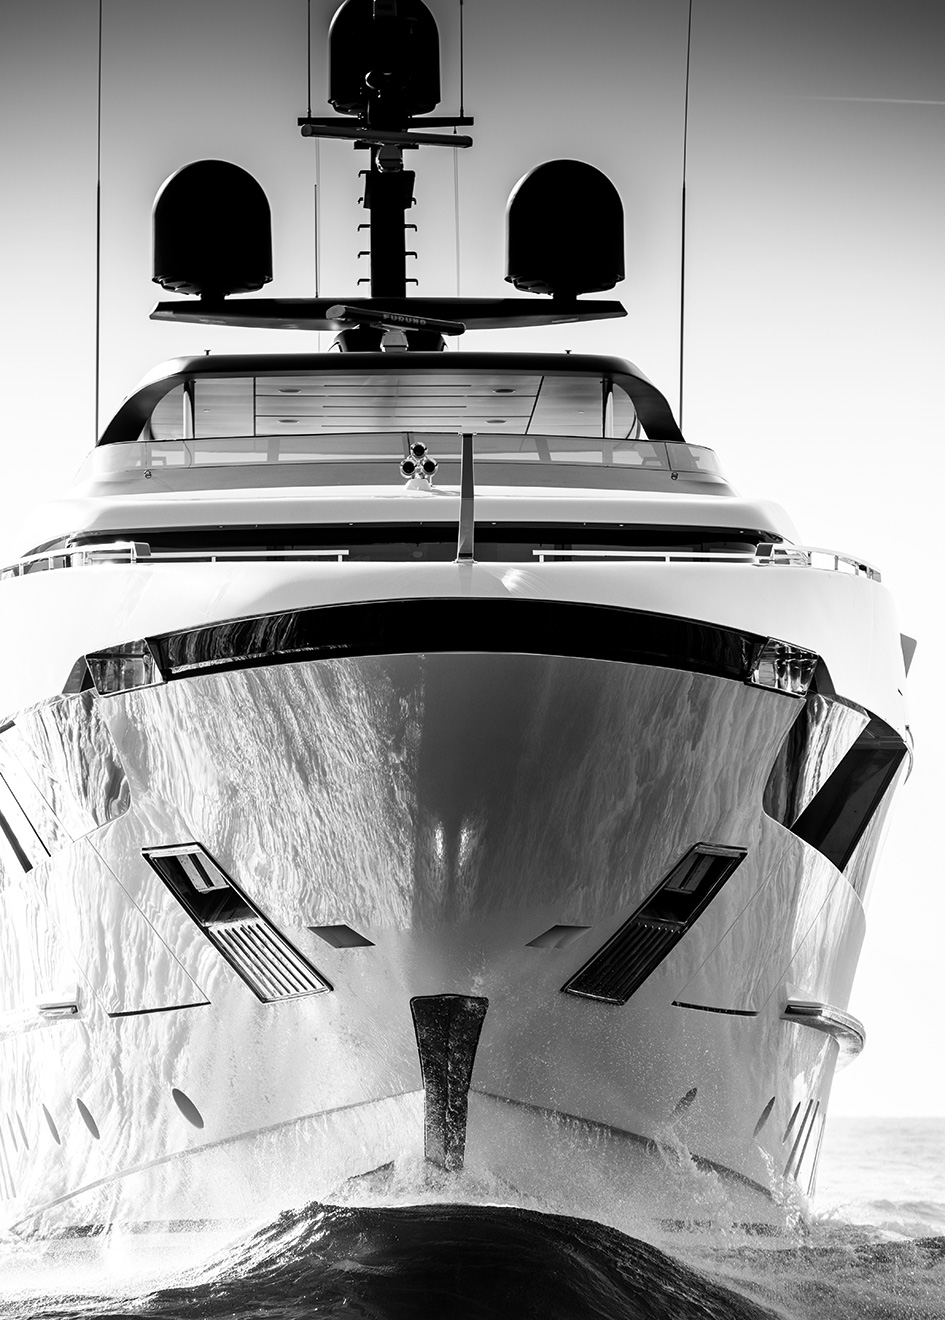 the-bow-of-the-sanlorenzo-flagship-yacht-seven-sins-credit-guillaume-plisson